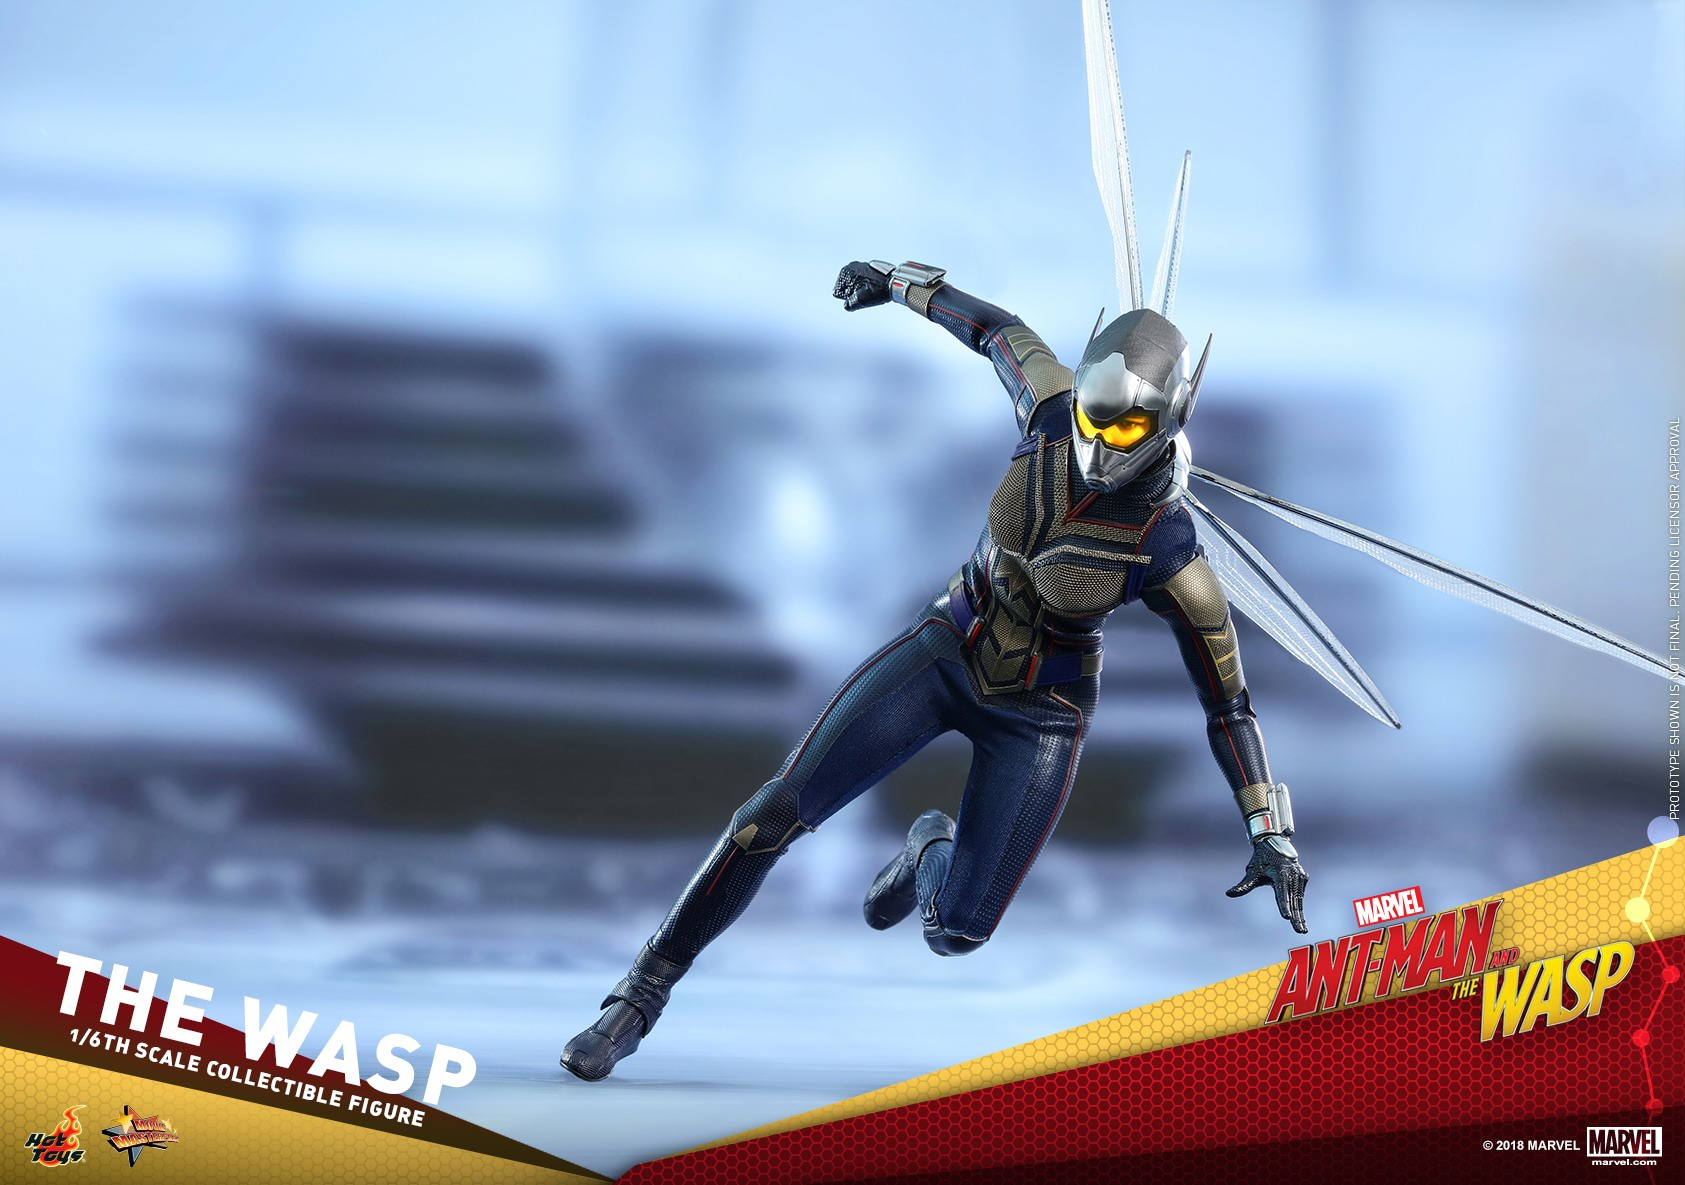 Hot-Toys-Ant-Man-and-The-Wasp-The-Wasp-Collectible-Figure_PR9.jpg